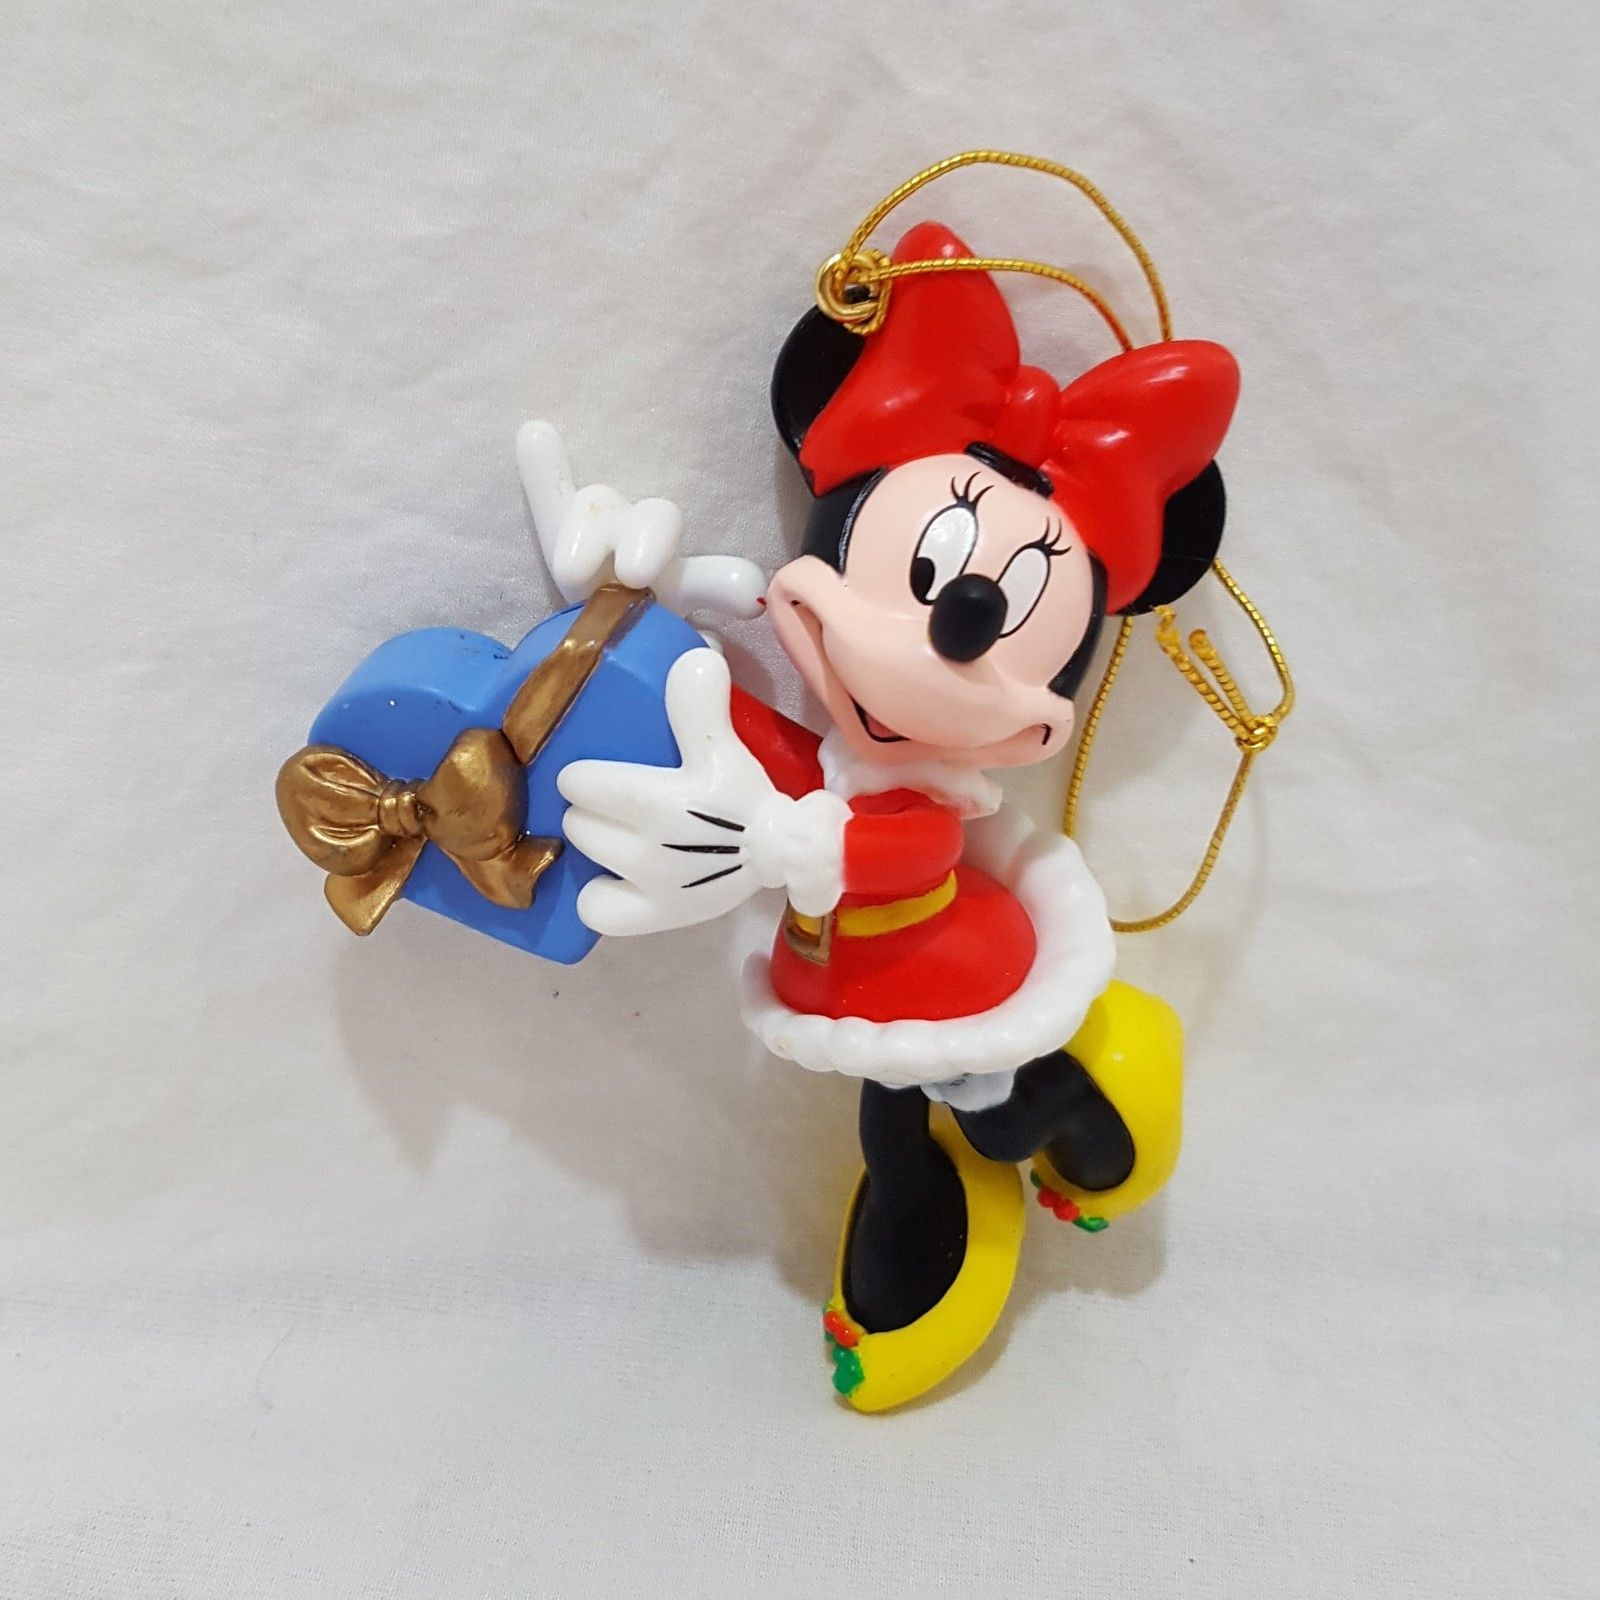 Minnie Mouse Disney Christmas Ornaments Resin 3 inches 1996 Heart Box Holiday